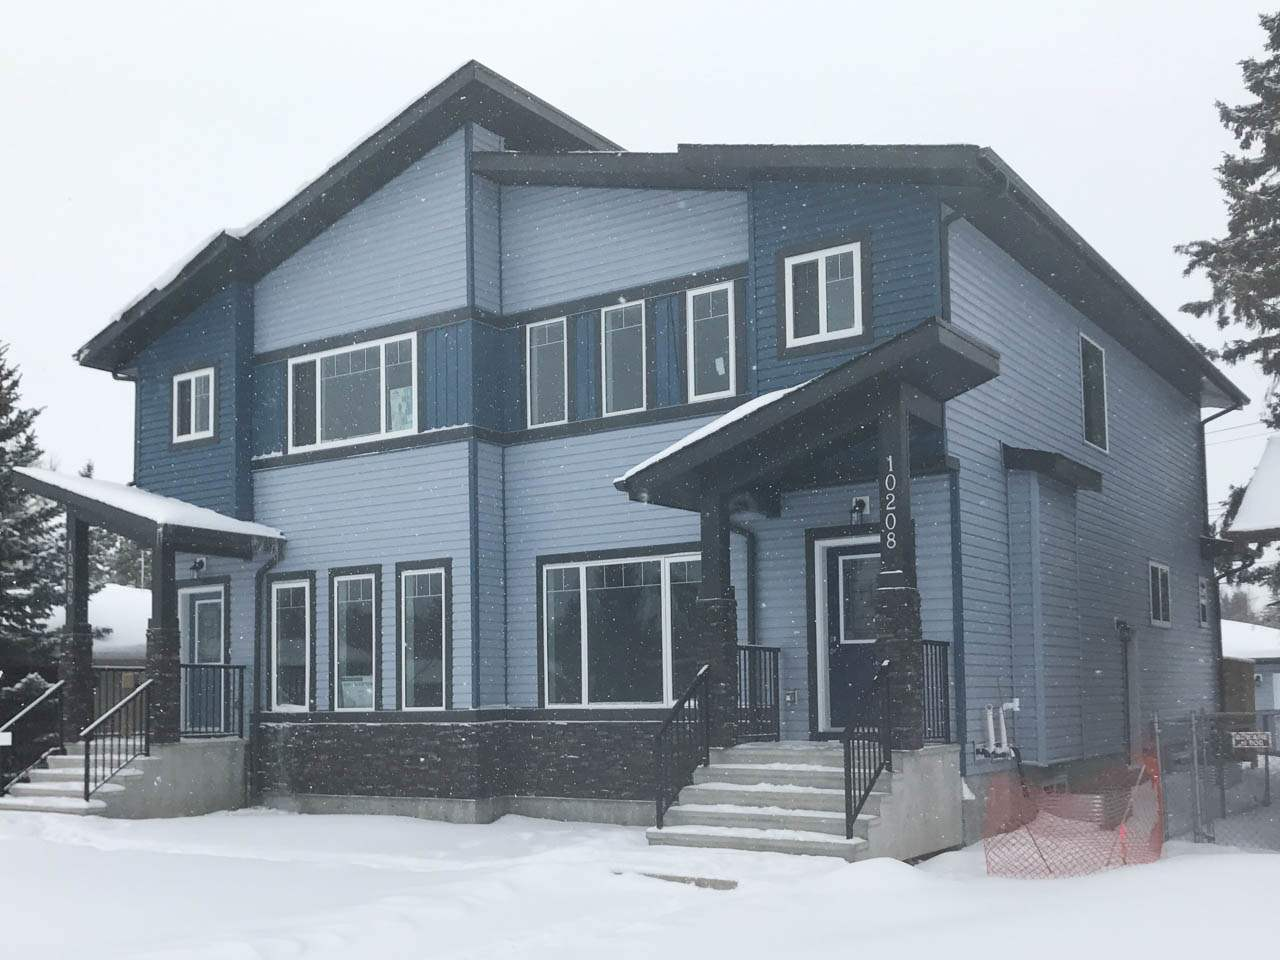 MLS® listing #E4146642 for sale located at 10208 162 St NW